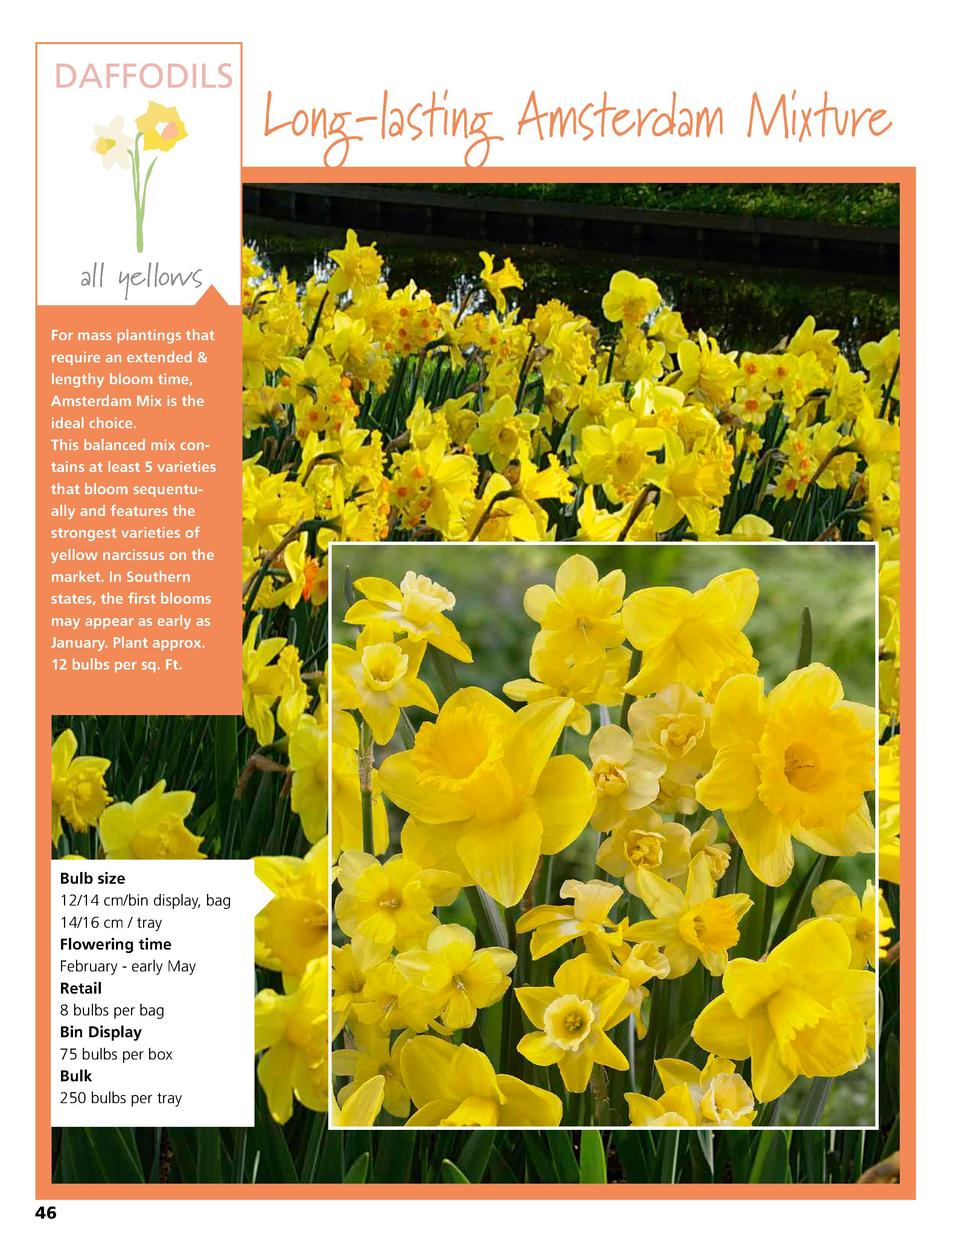 DAFFODILS  all yellows For mass plantings that require an extended   lengthy bloom time, Amsterdam Mix is the ideal choice...